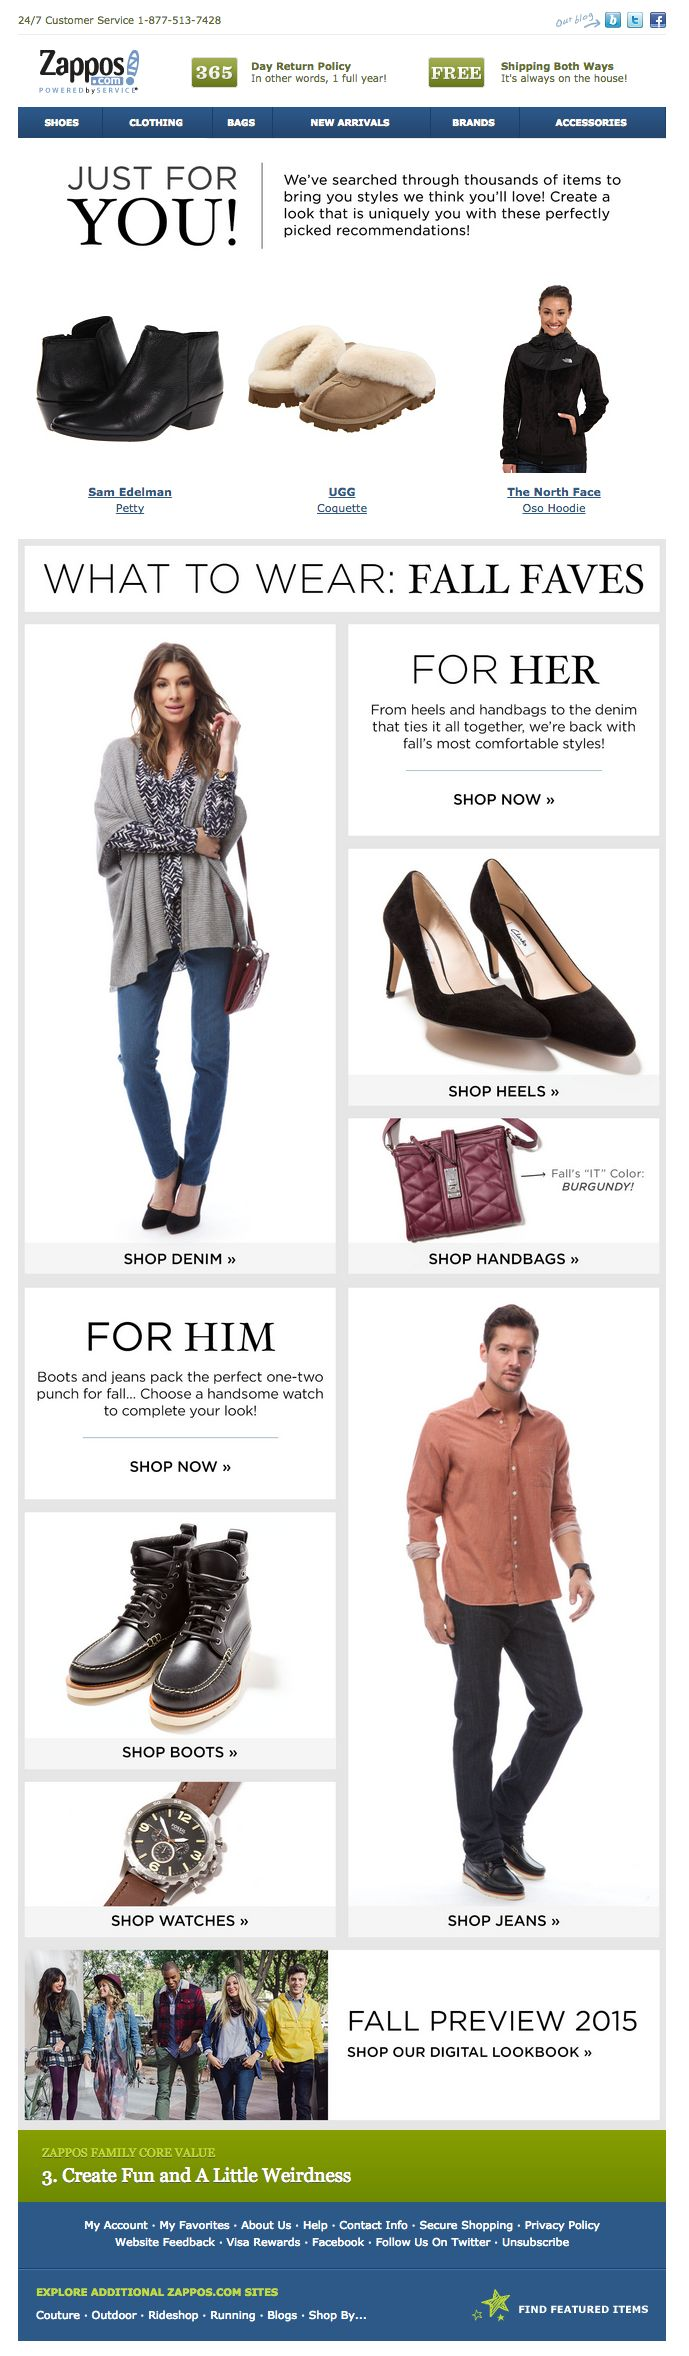   newsletter   fashion email   fashion design   email   email marketing   email inspiration   e-mail